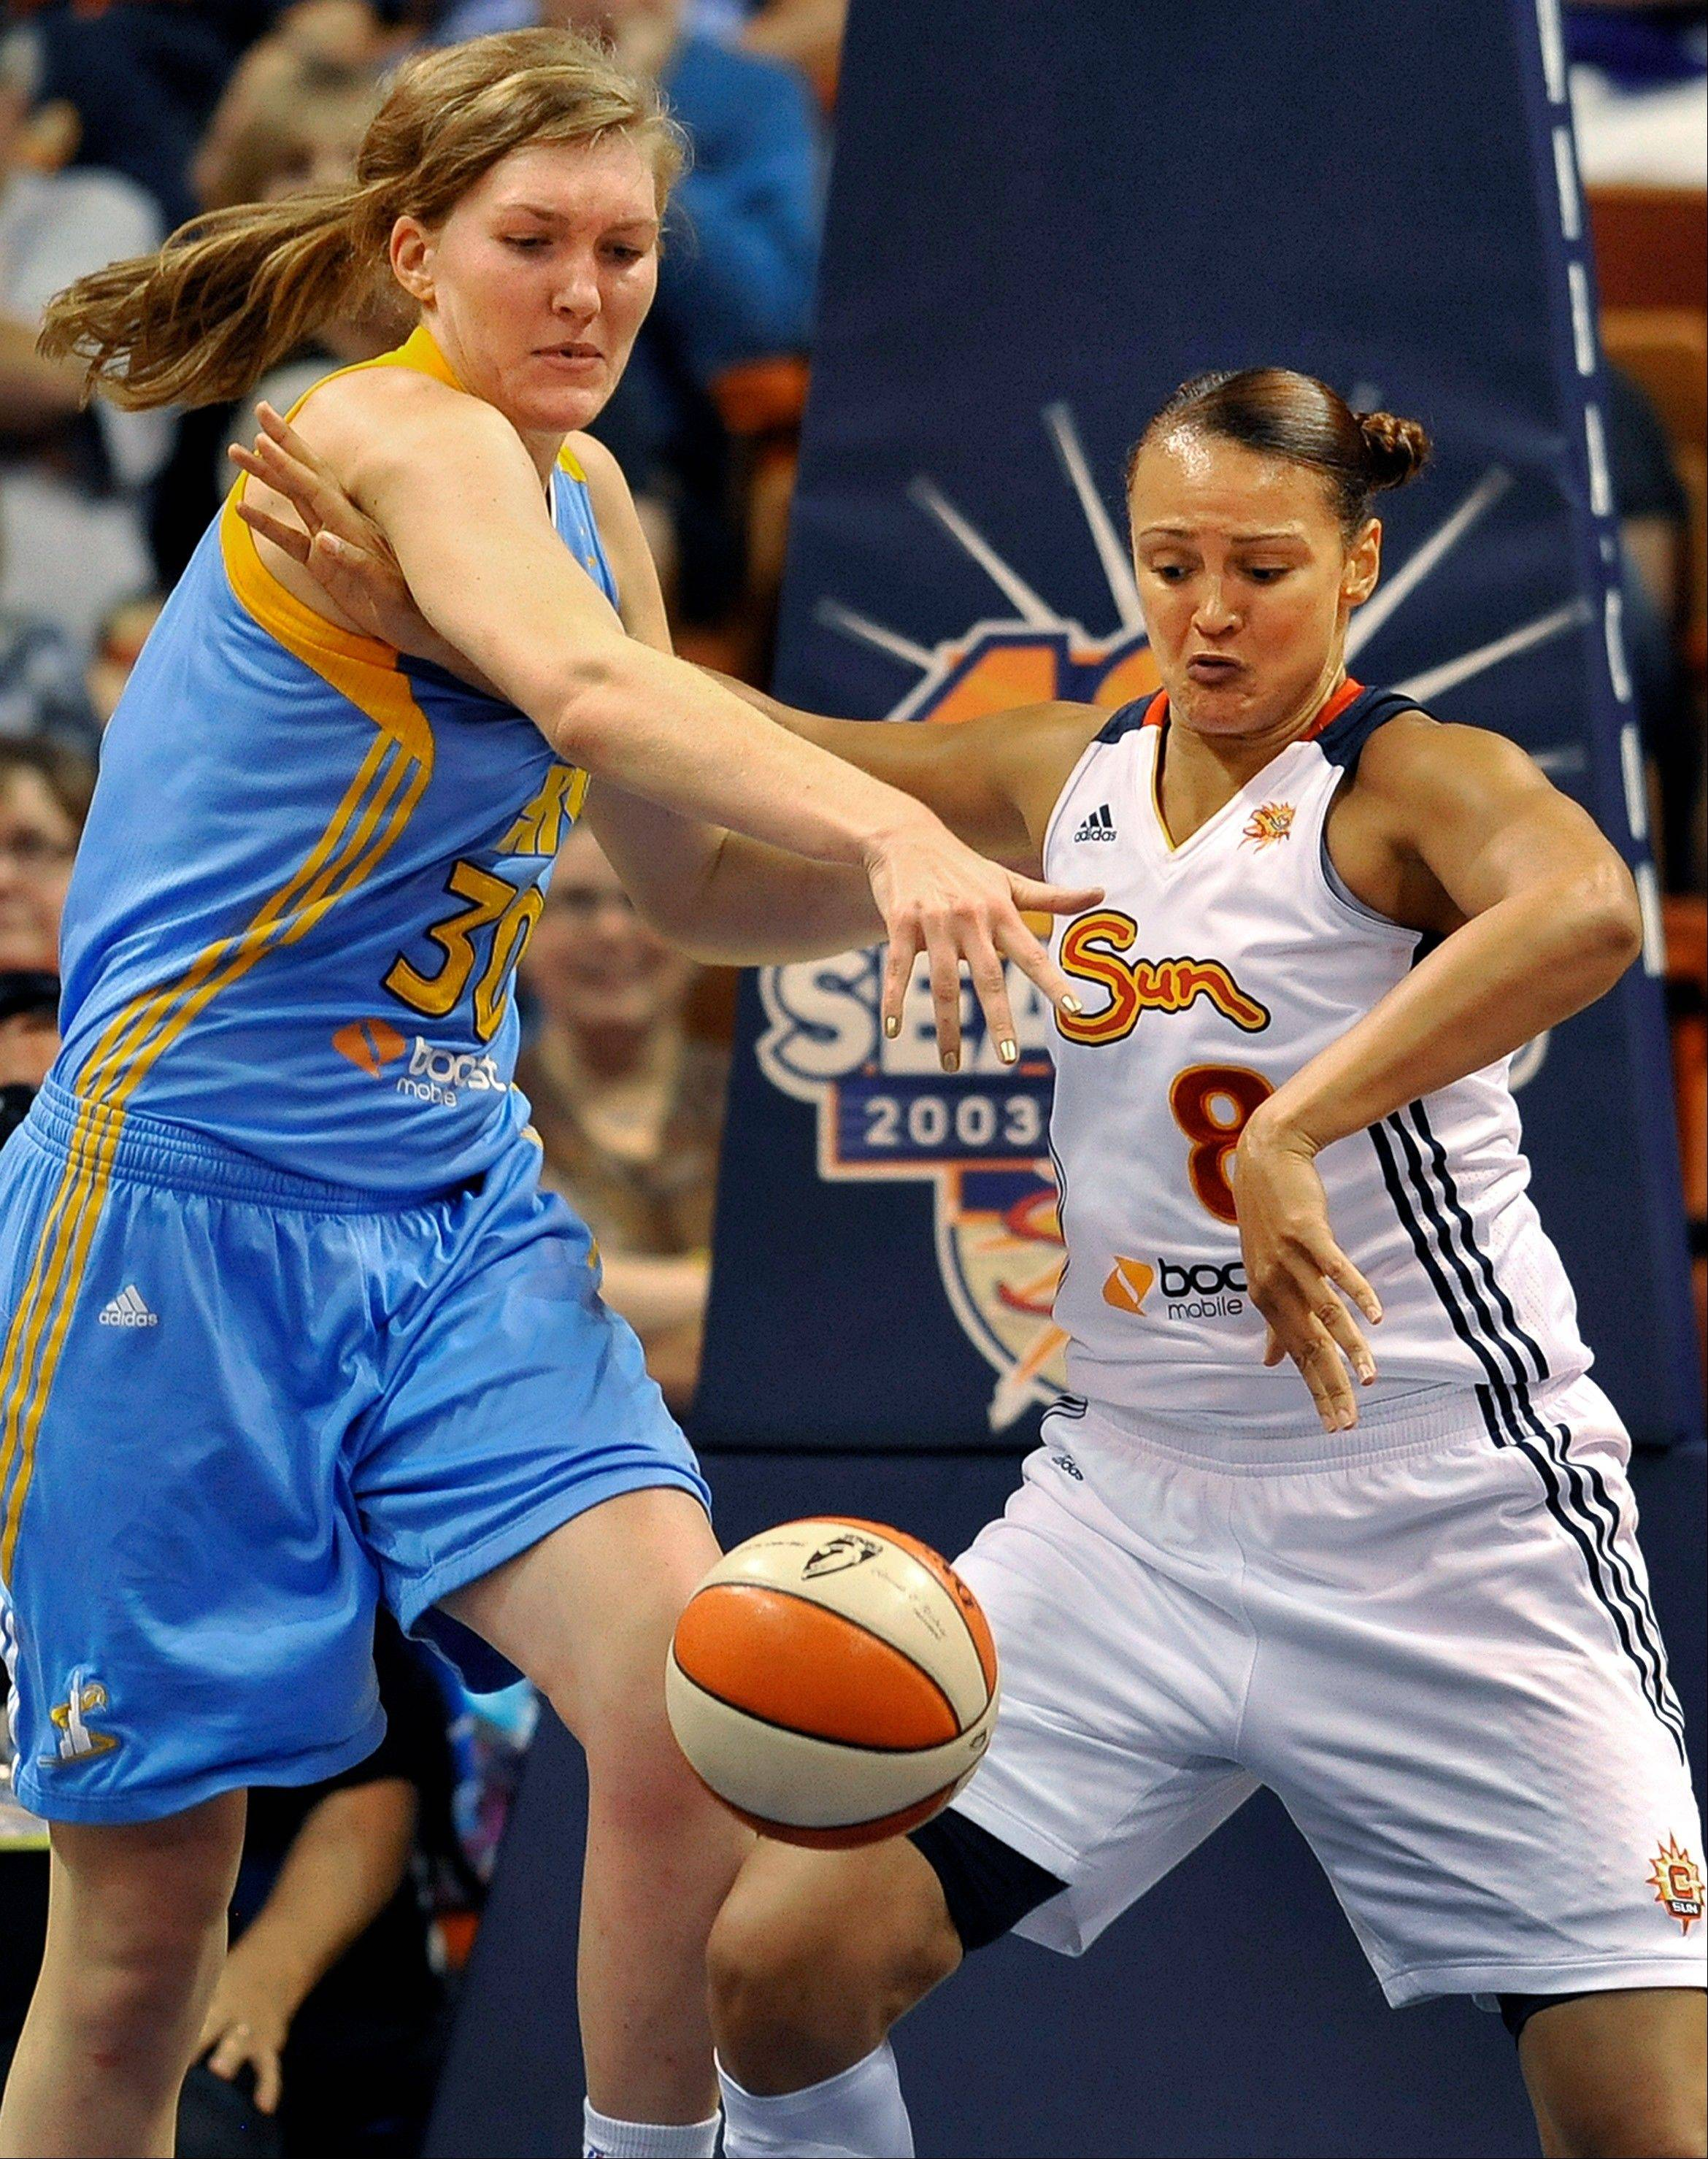 Chicago Sky center Carolyn Swords, left, and Connecticut Sun's Mistie Mims battle for a rebound Sunday in Uncasville, Conn. Swords filled in for Sylvia Fowles, who missed the game for personal reasons, and contributed 14 points.